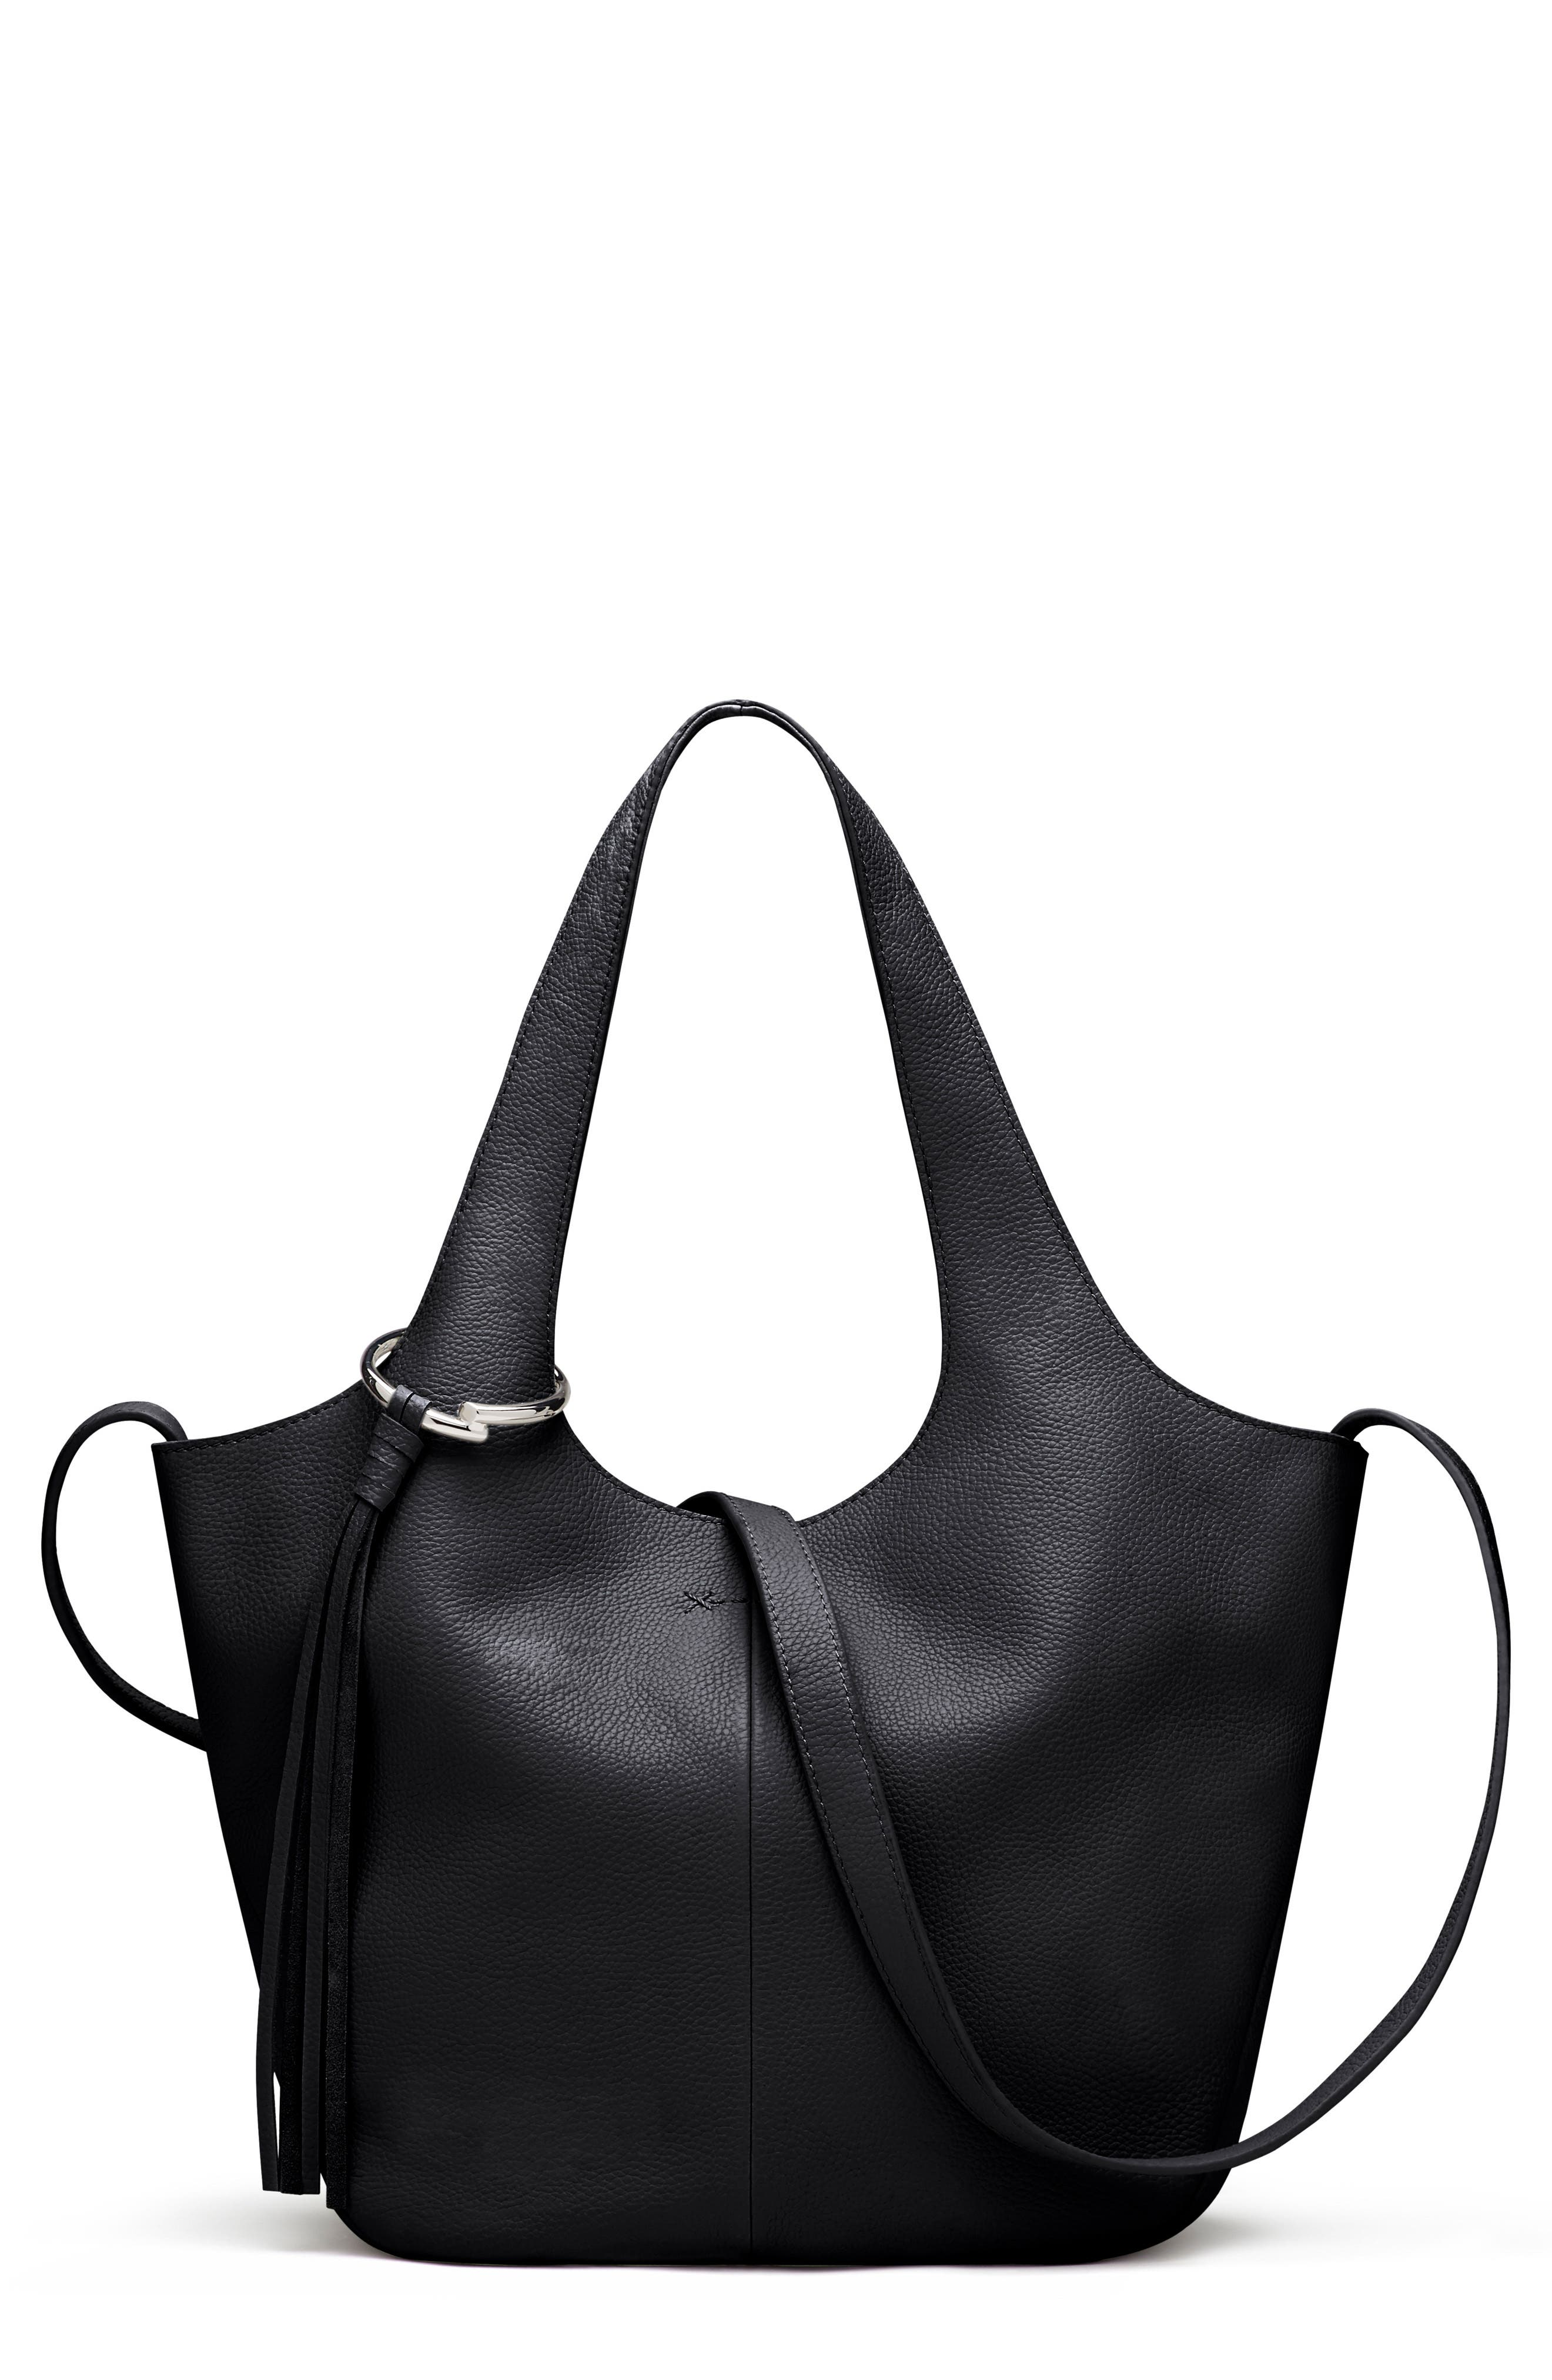 ELIZABETH AND JAMES Small Finley Leather Shopper